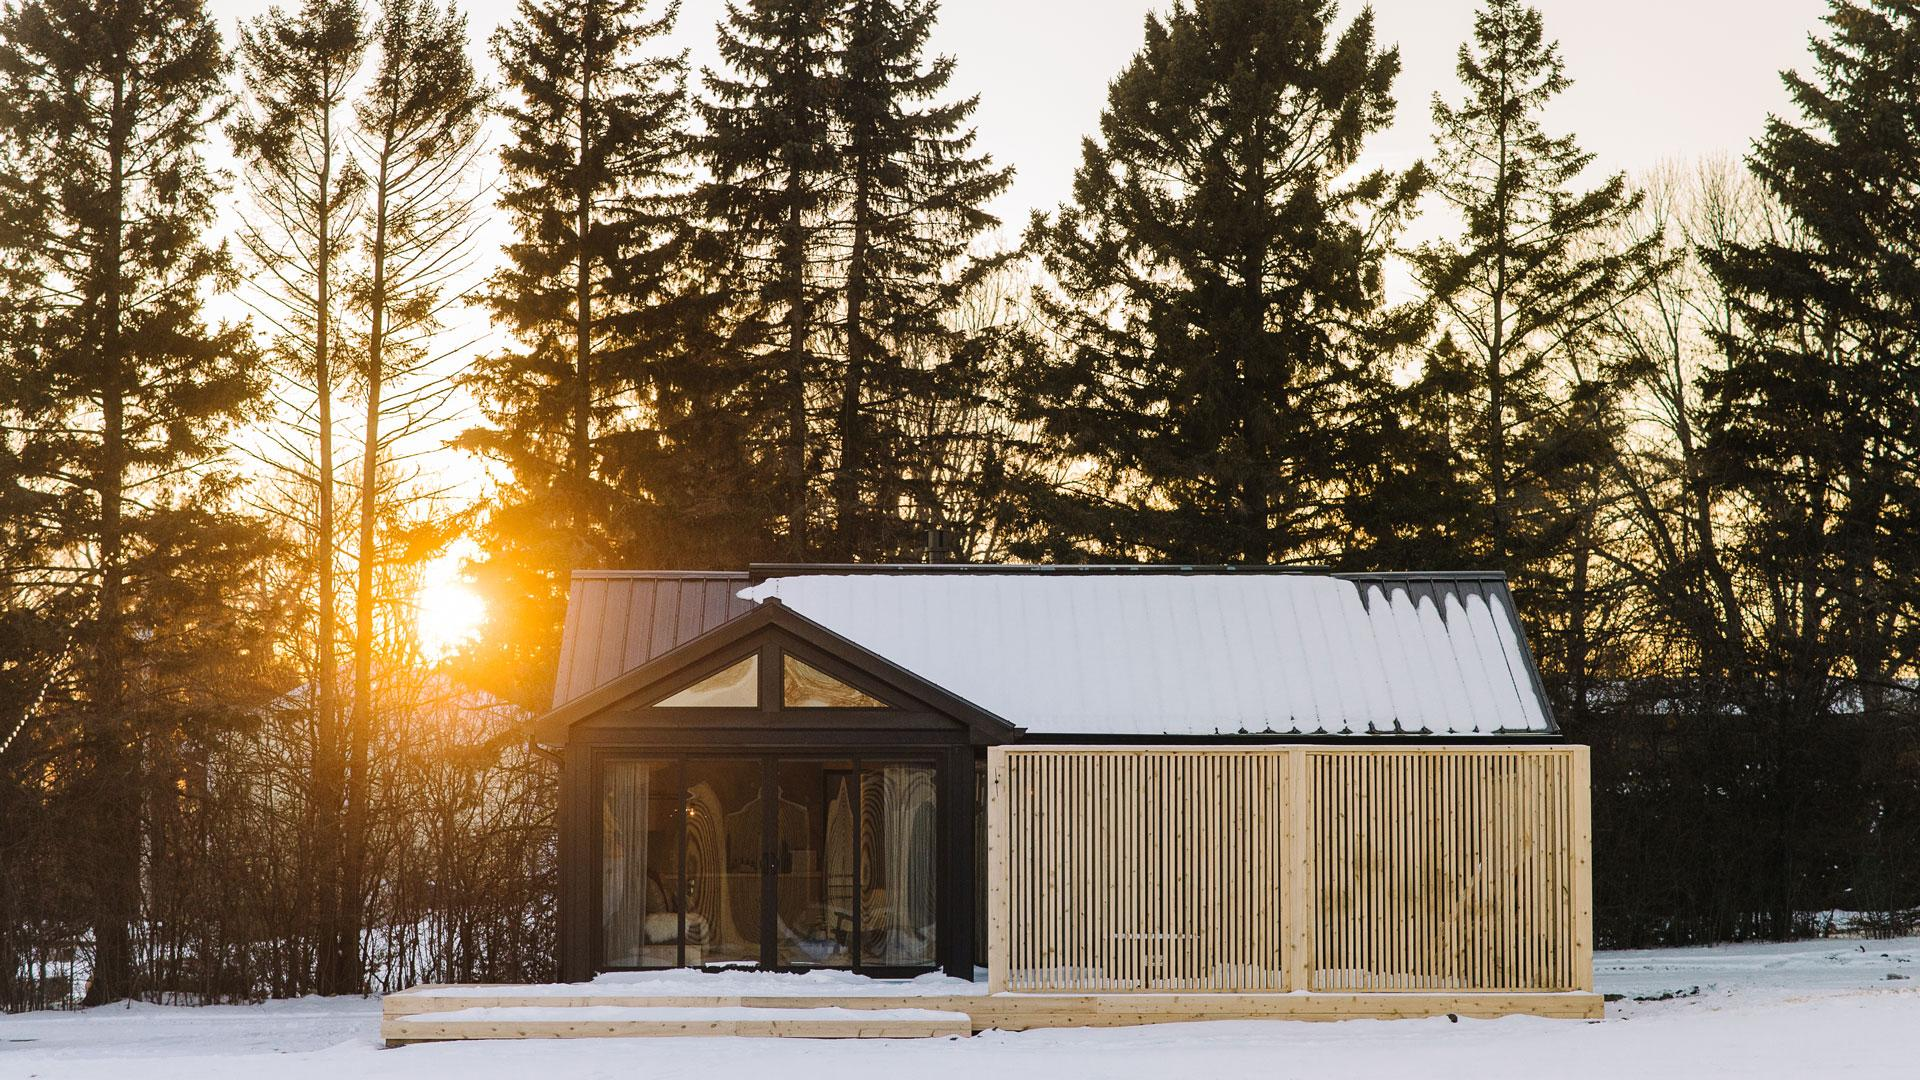 Wander the Resort in Prince Edward County | Cabin in the winter